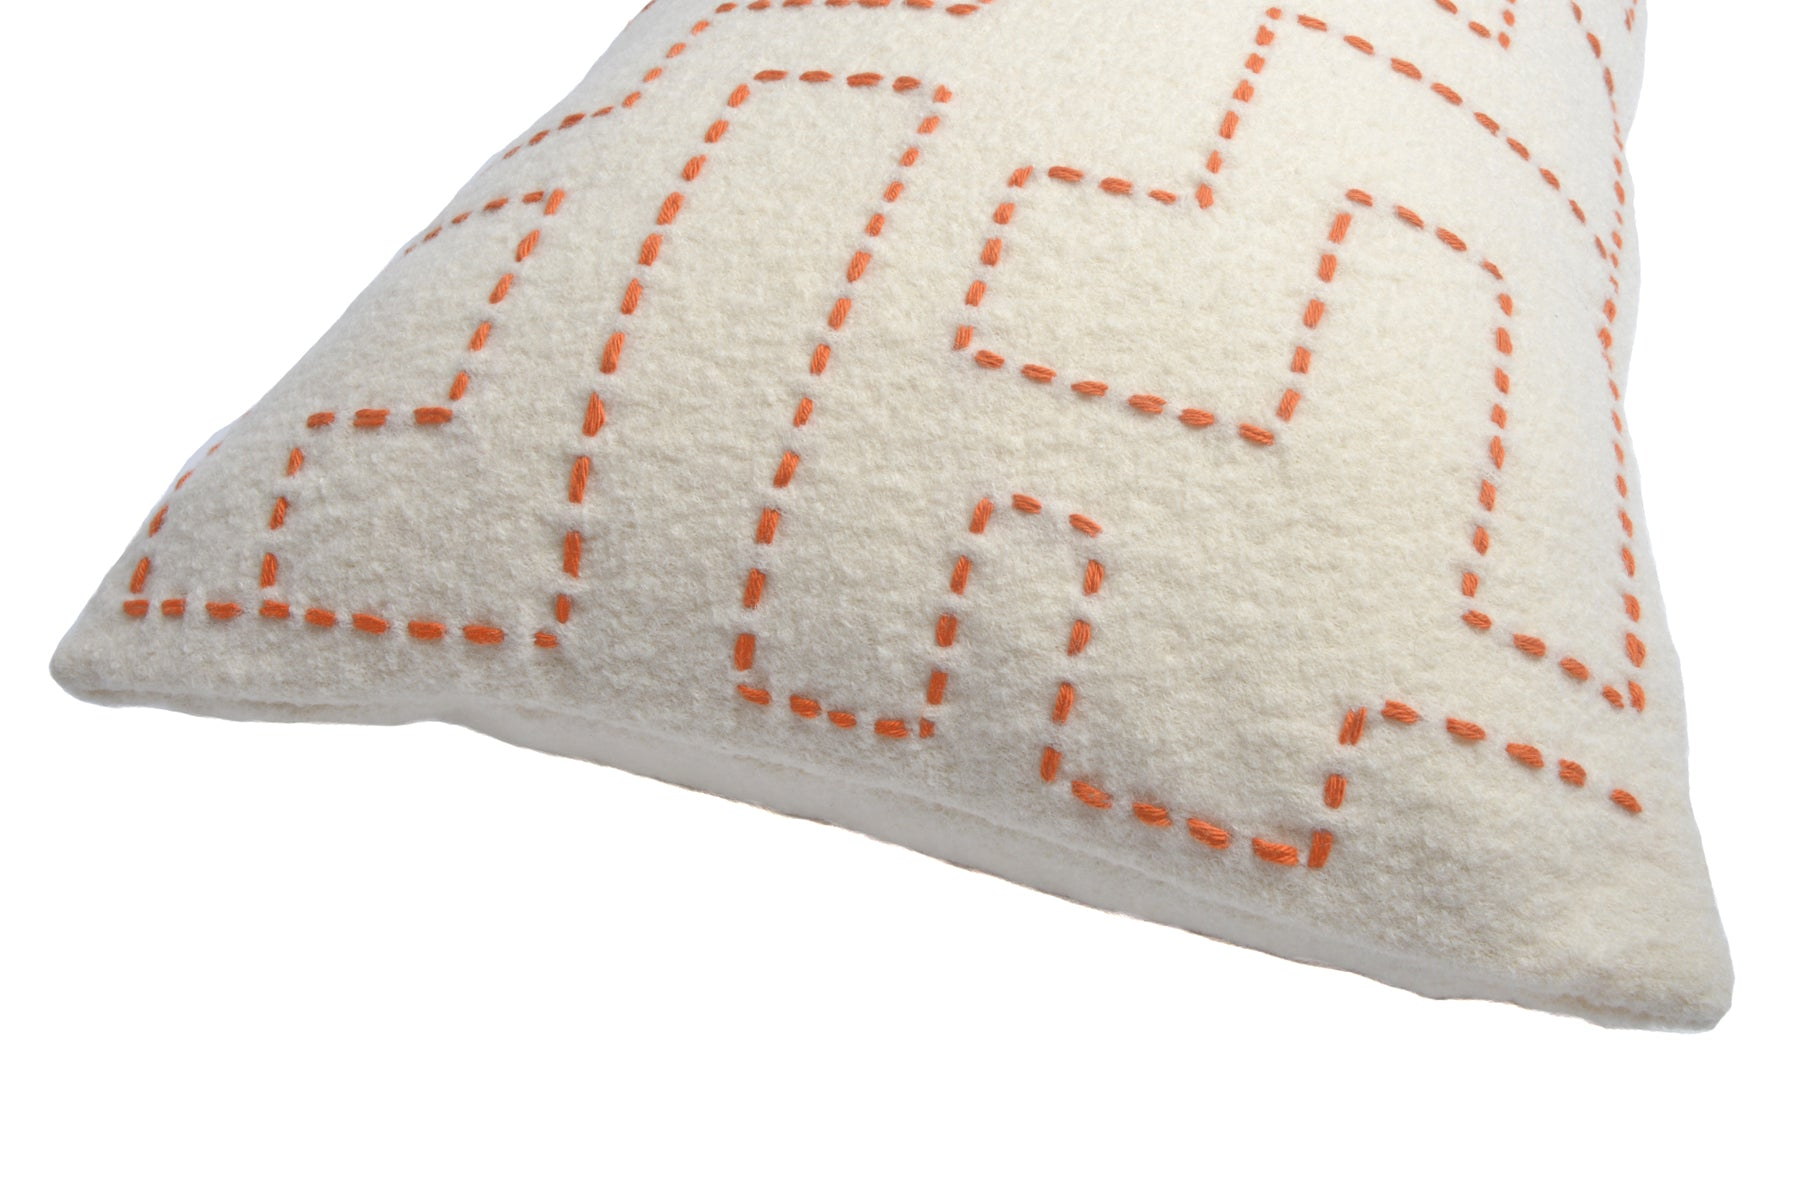 Turner Large Hand-Embroidered Cushion in Orange on Off-White